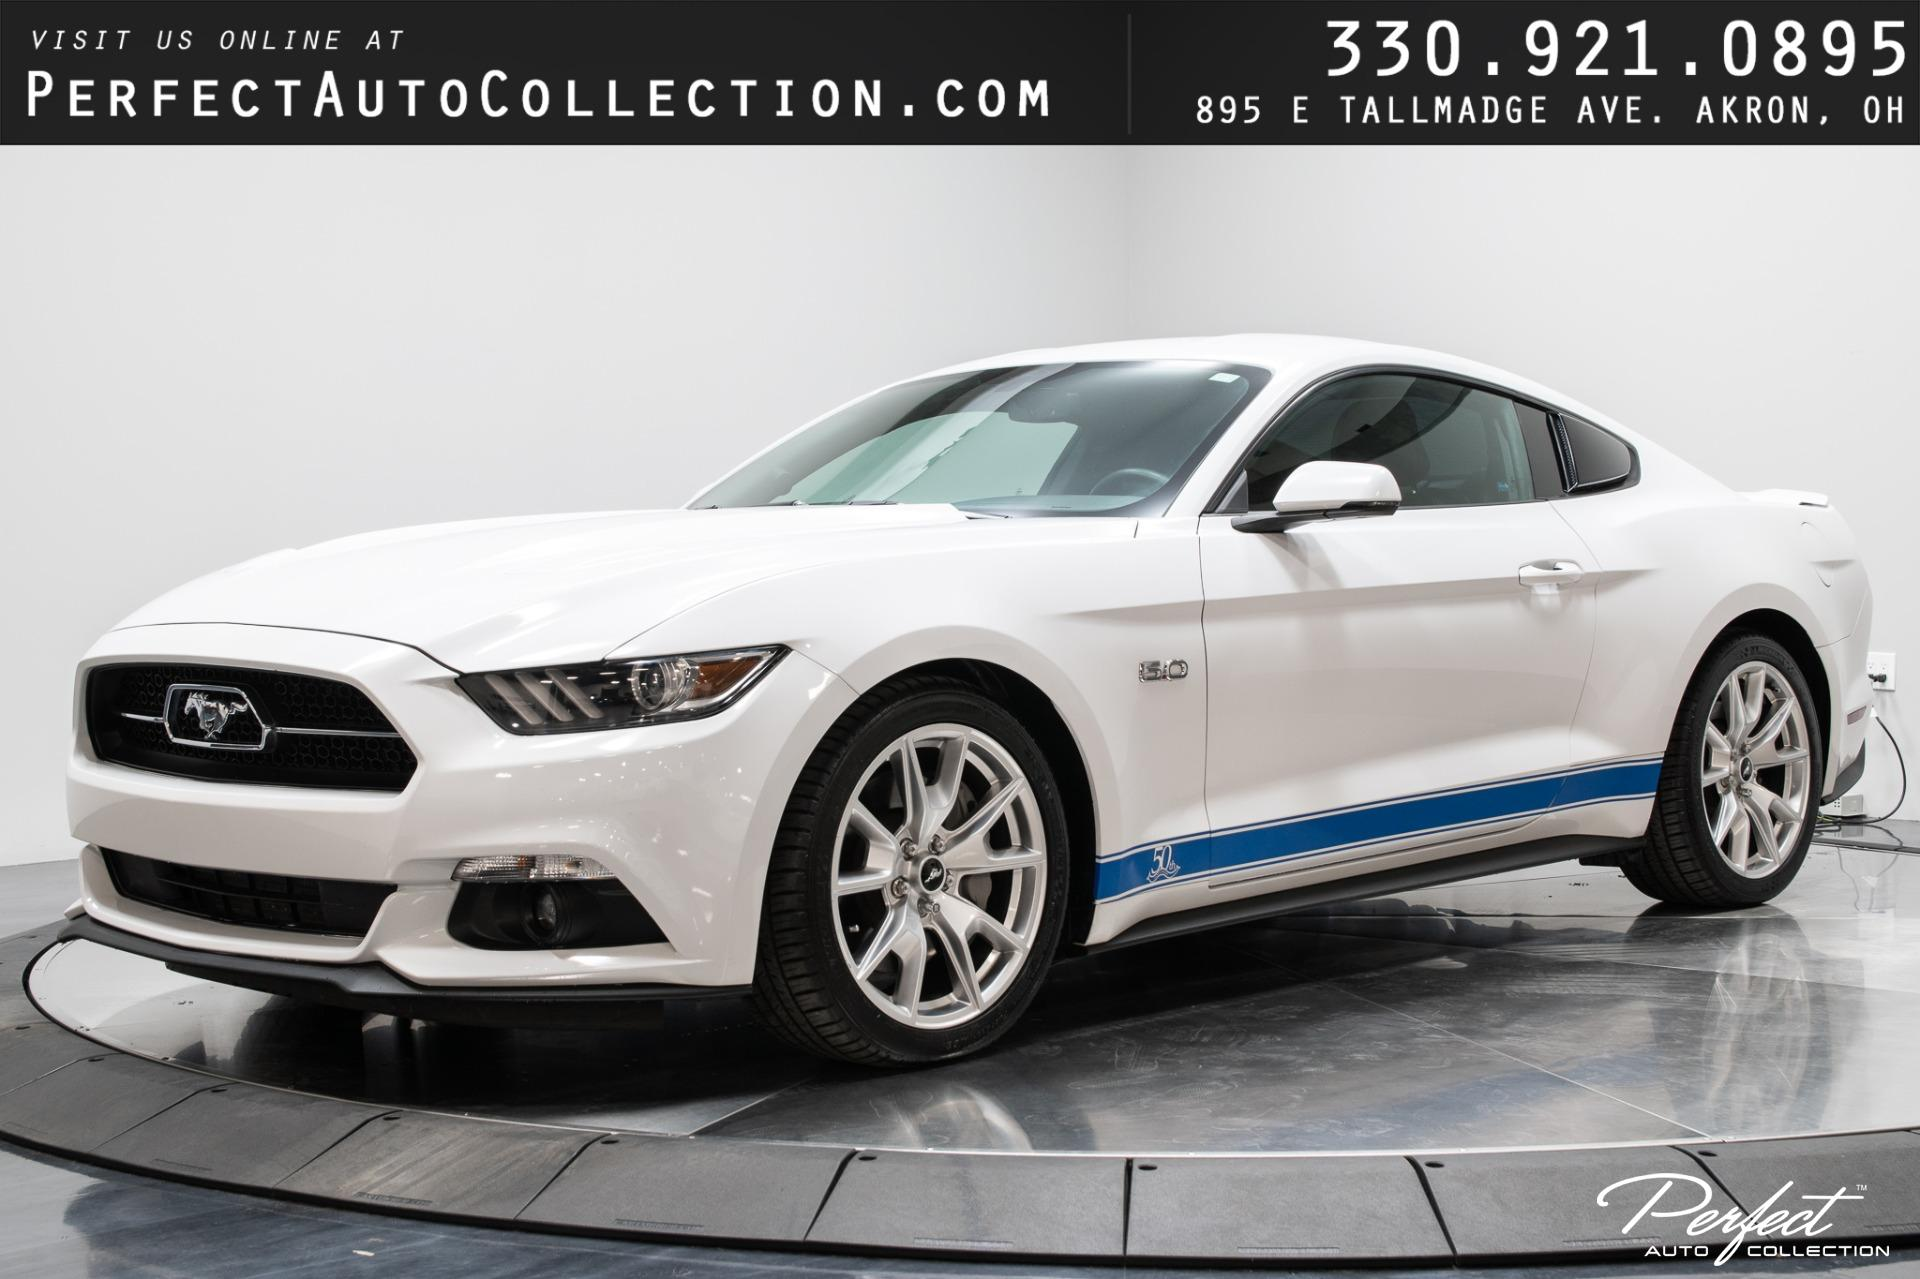 Used 2015 Ford Mustang for sale $31,293 at Perfect Auto Collection in Akron OH 44310 1